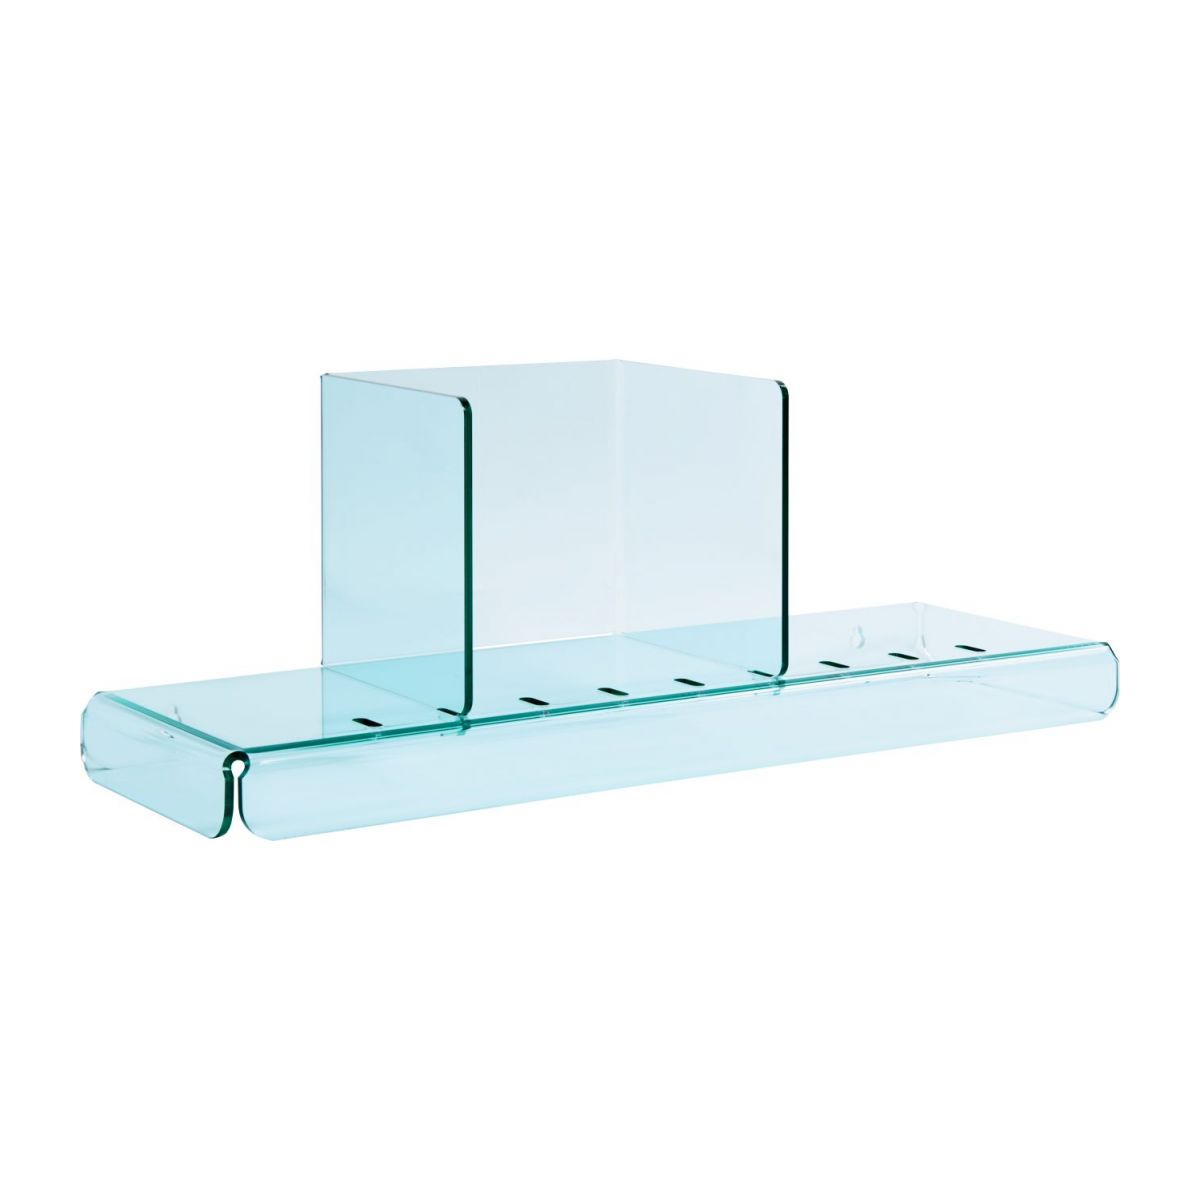 Shelf made of acrylic, transparent n°2